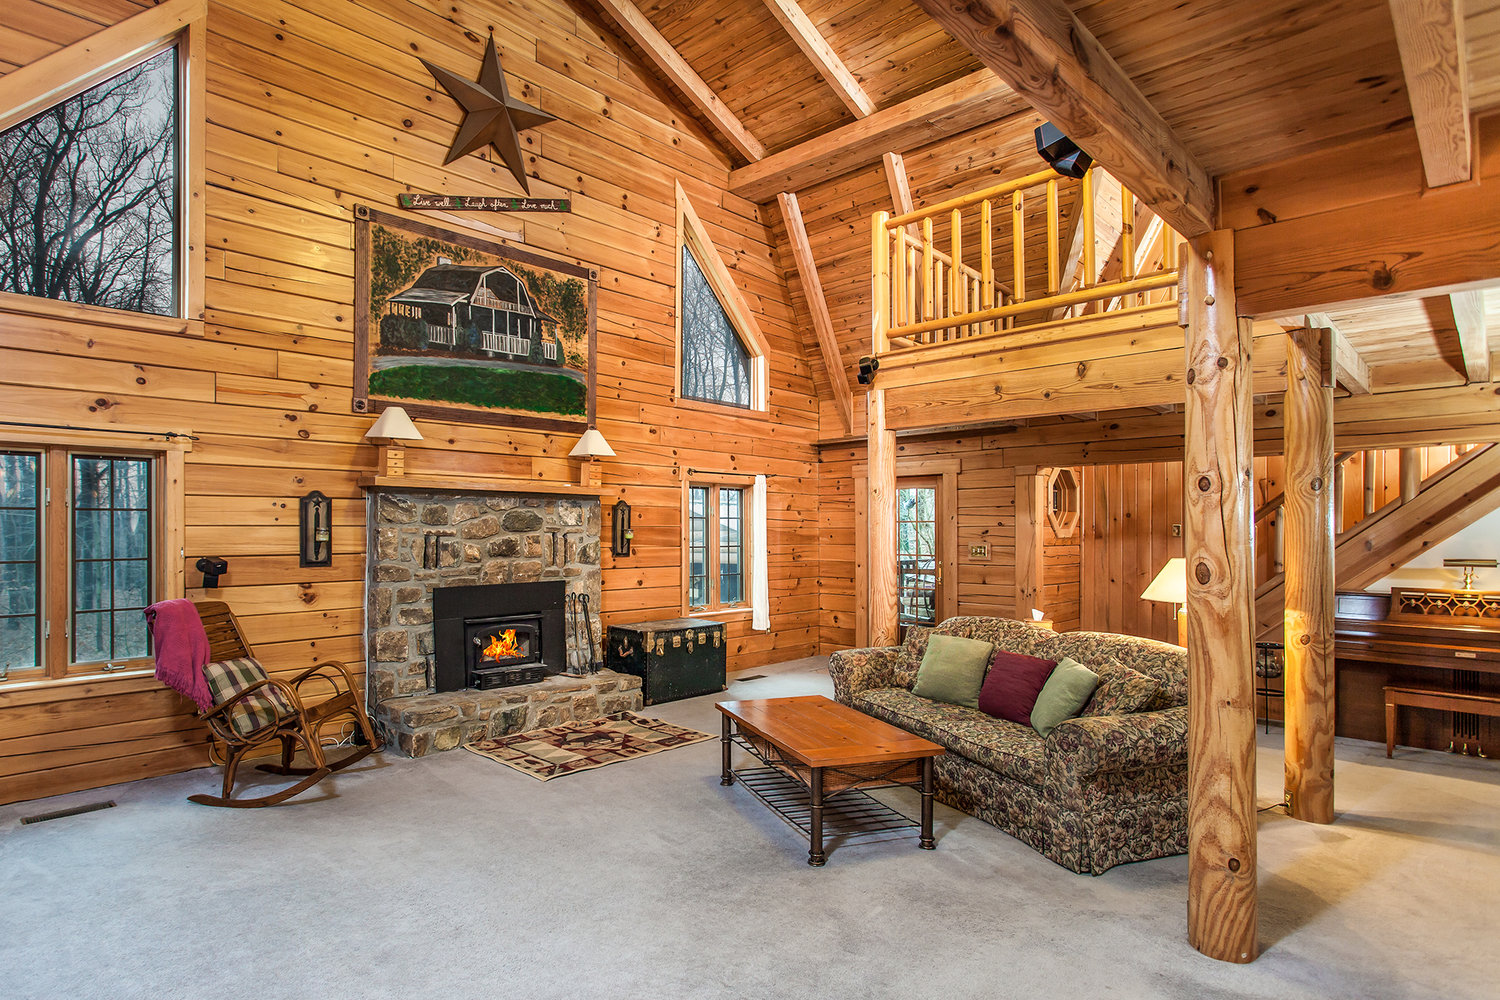 Log Homes For Sale in Berks County, PA | Jeffrey Hogue Realtor